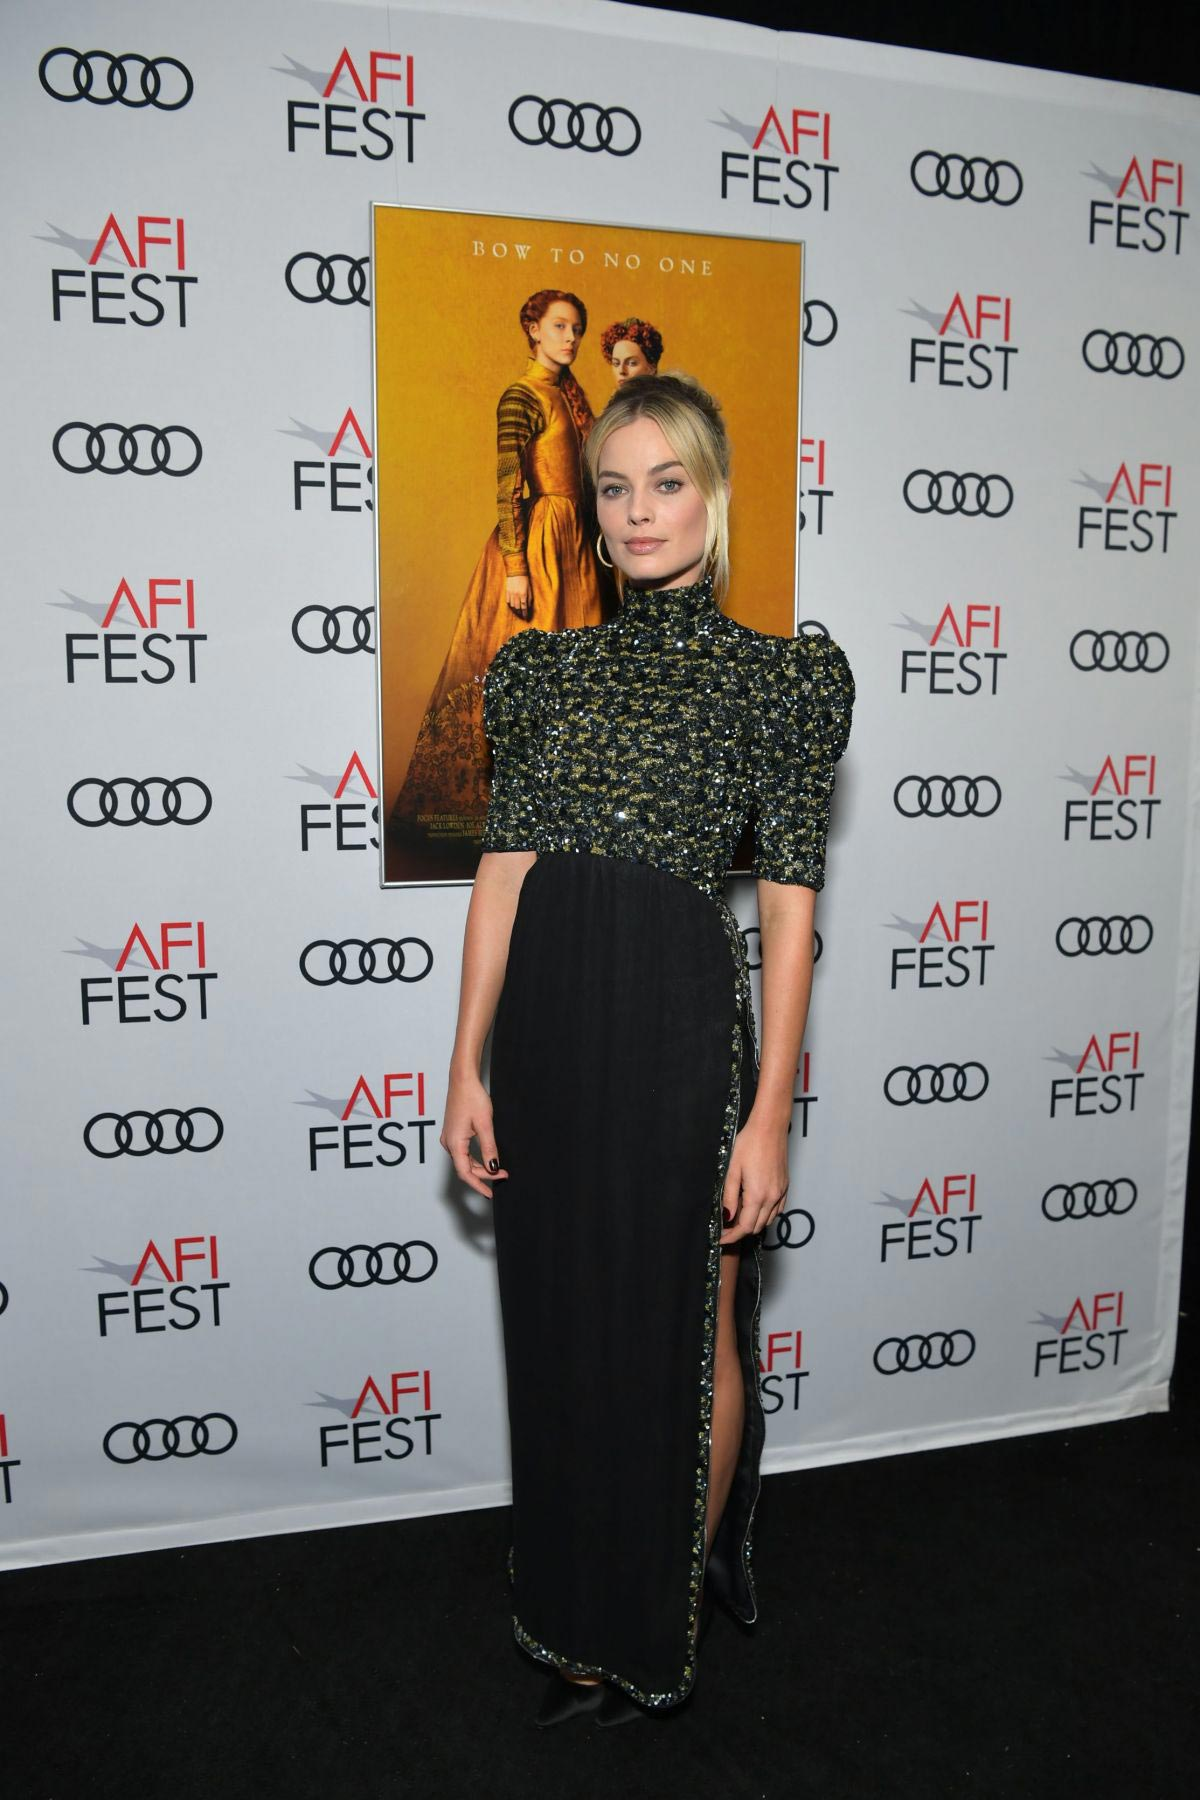 Margot Robbie at Mary Queen of Scots Screening at Afi Fest 2018 in Hollywood 2018/11/18 1